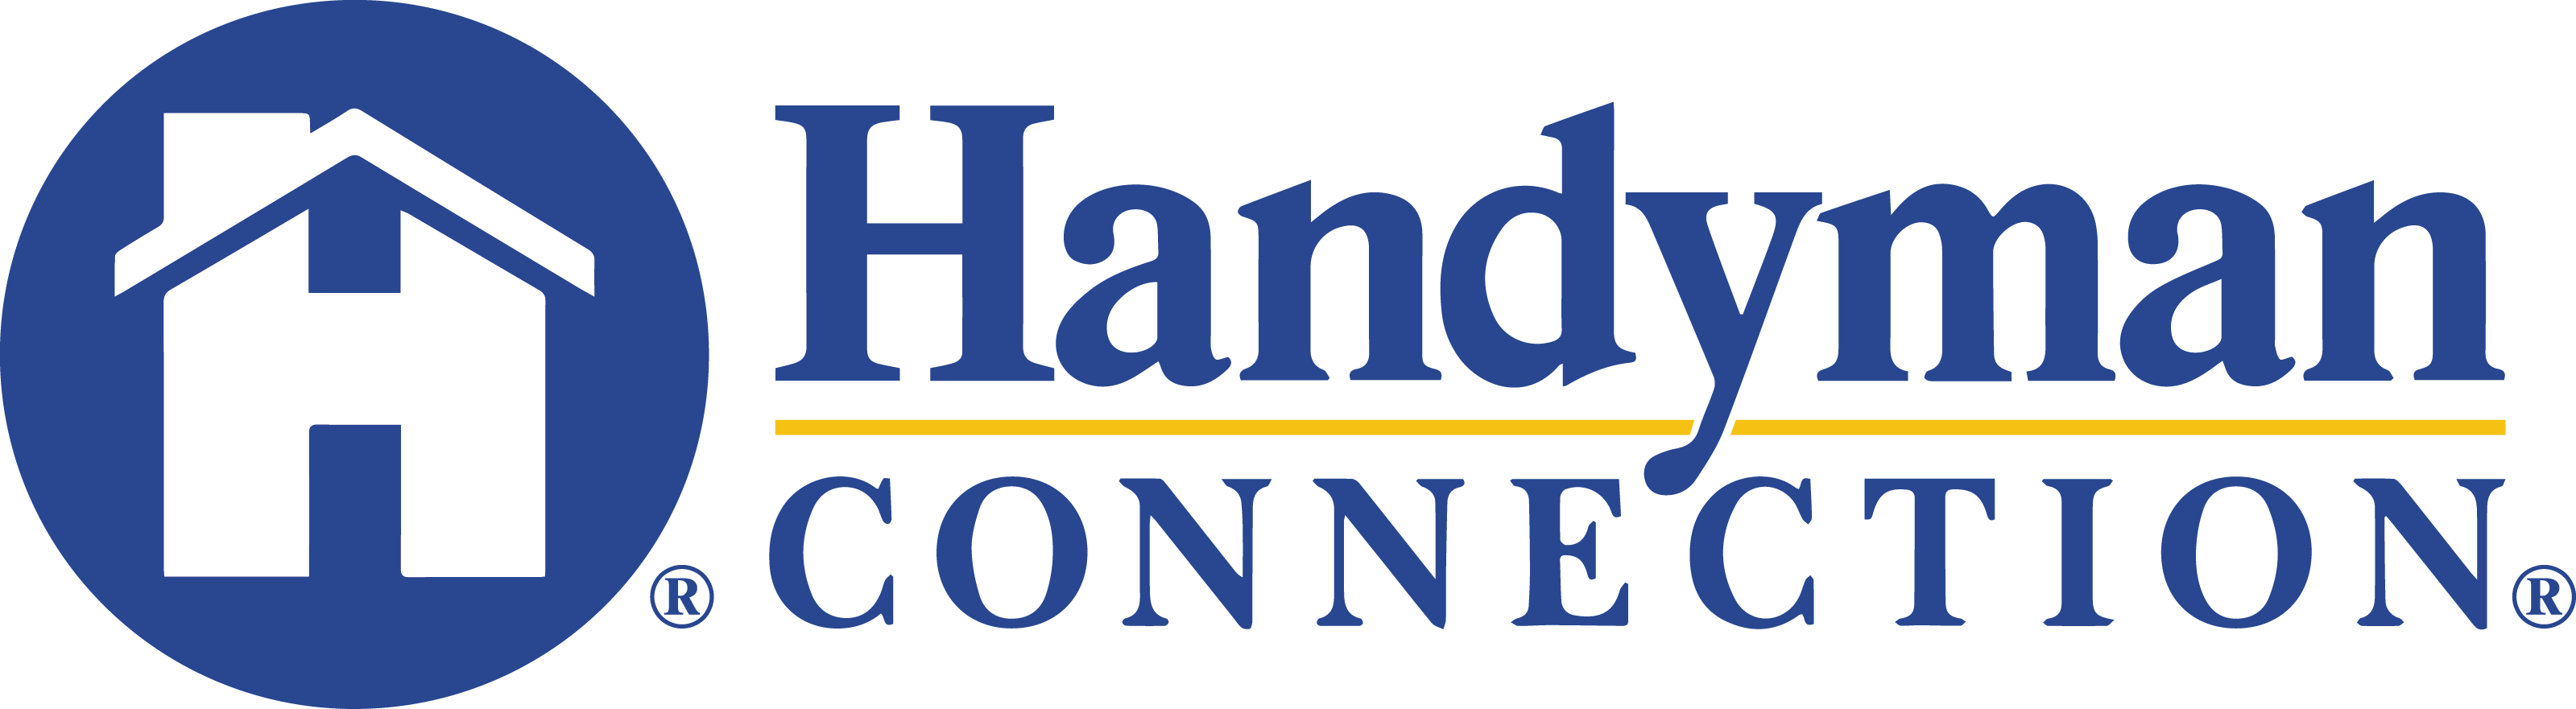 Handyman Connection of Cincinnati, OH